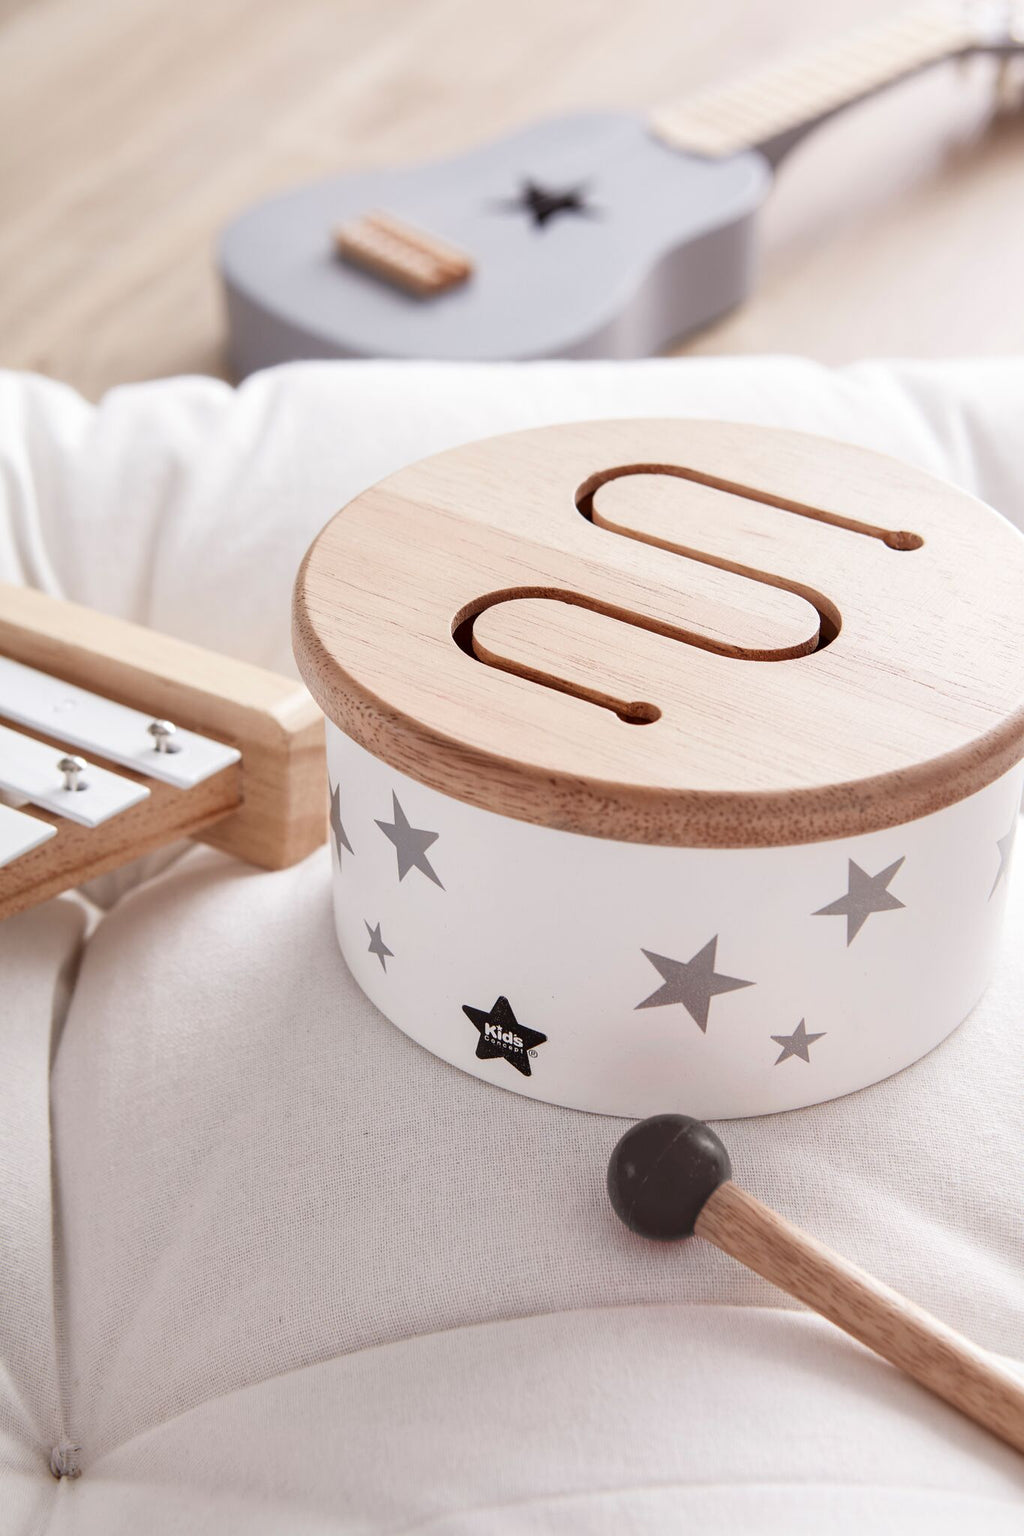 Kids Concept - Drum mini white, Wooden Toys, Kids Concept, nursery, kids, babies, presents, gifts - Home & Me